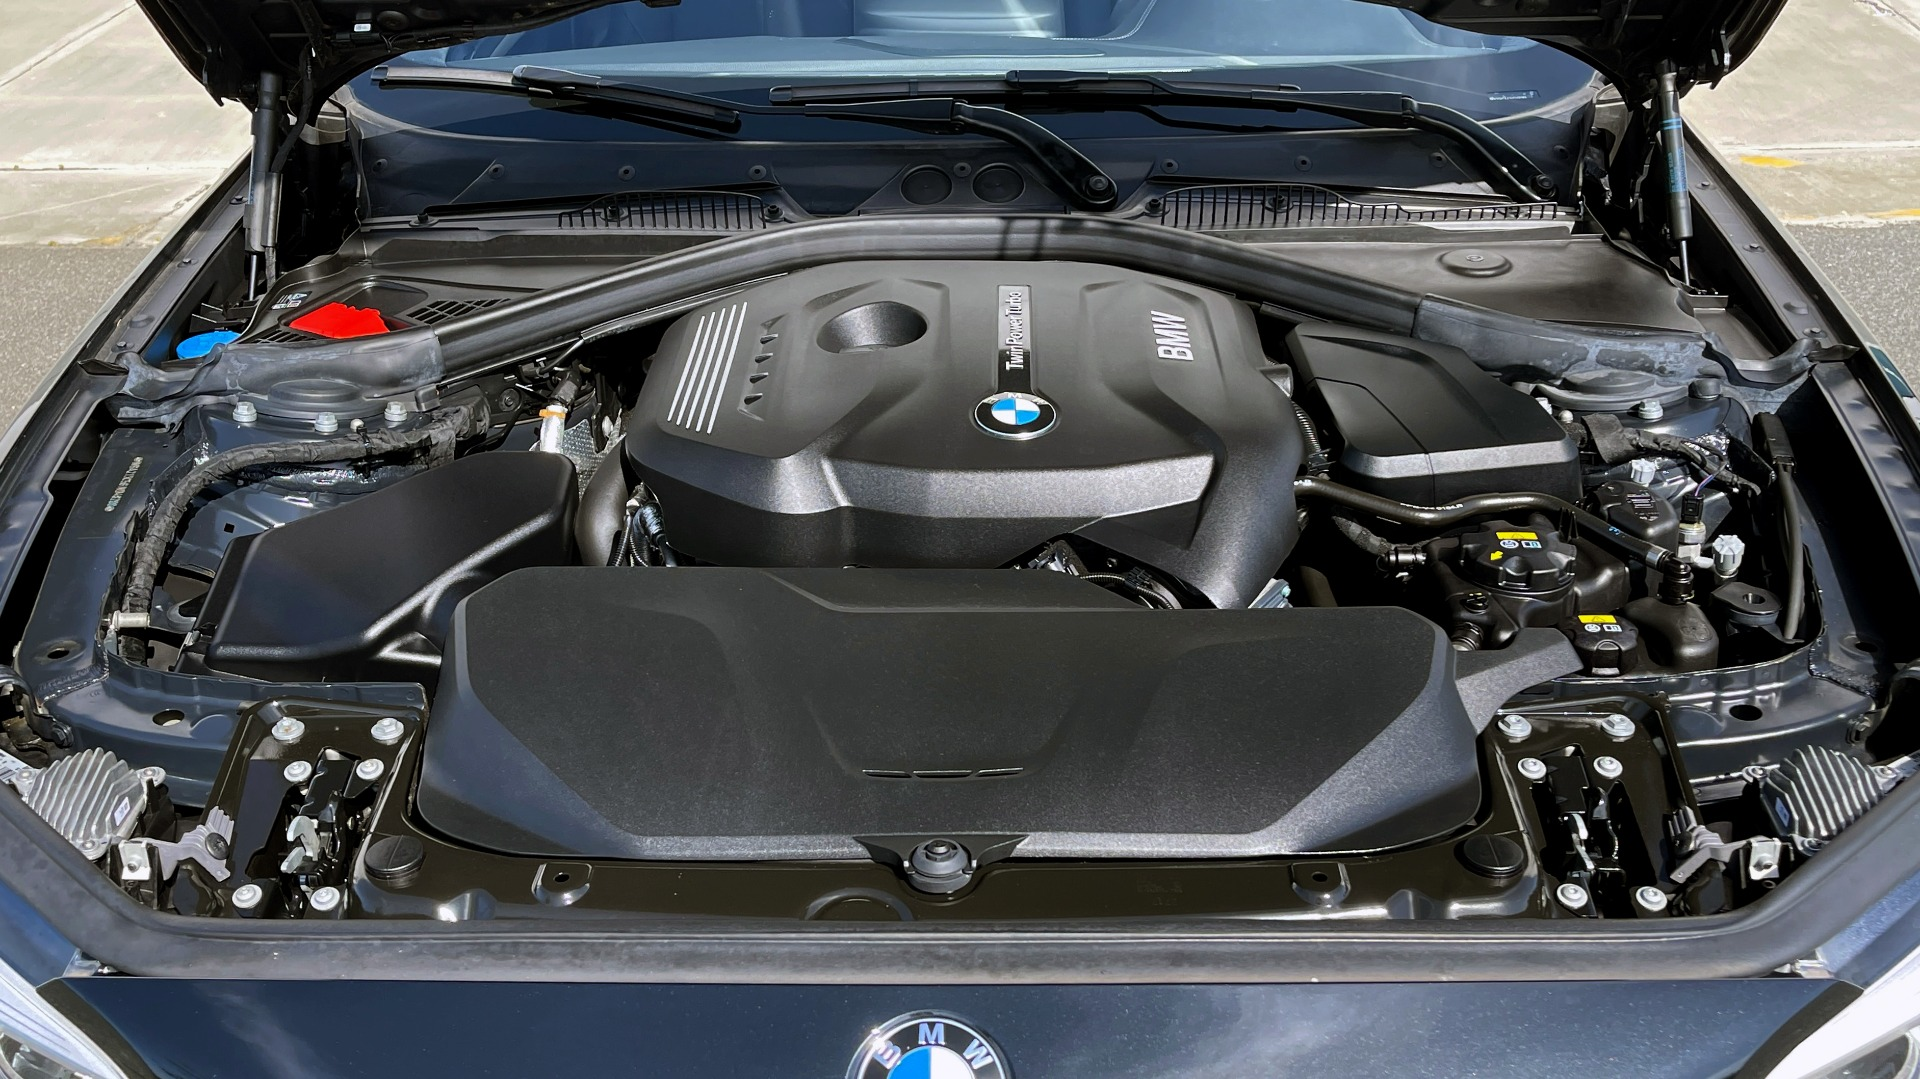 Used 2018 BMW 2 SERIES 230I XDRIVE PREMIUM / CONV PKG / NAV / SUNROOF / REARVIEW for sale $30,795 at Formula Imports in Charlotte NC 28227 8